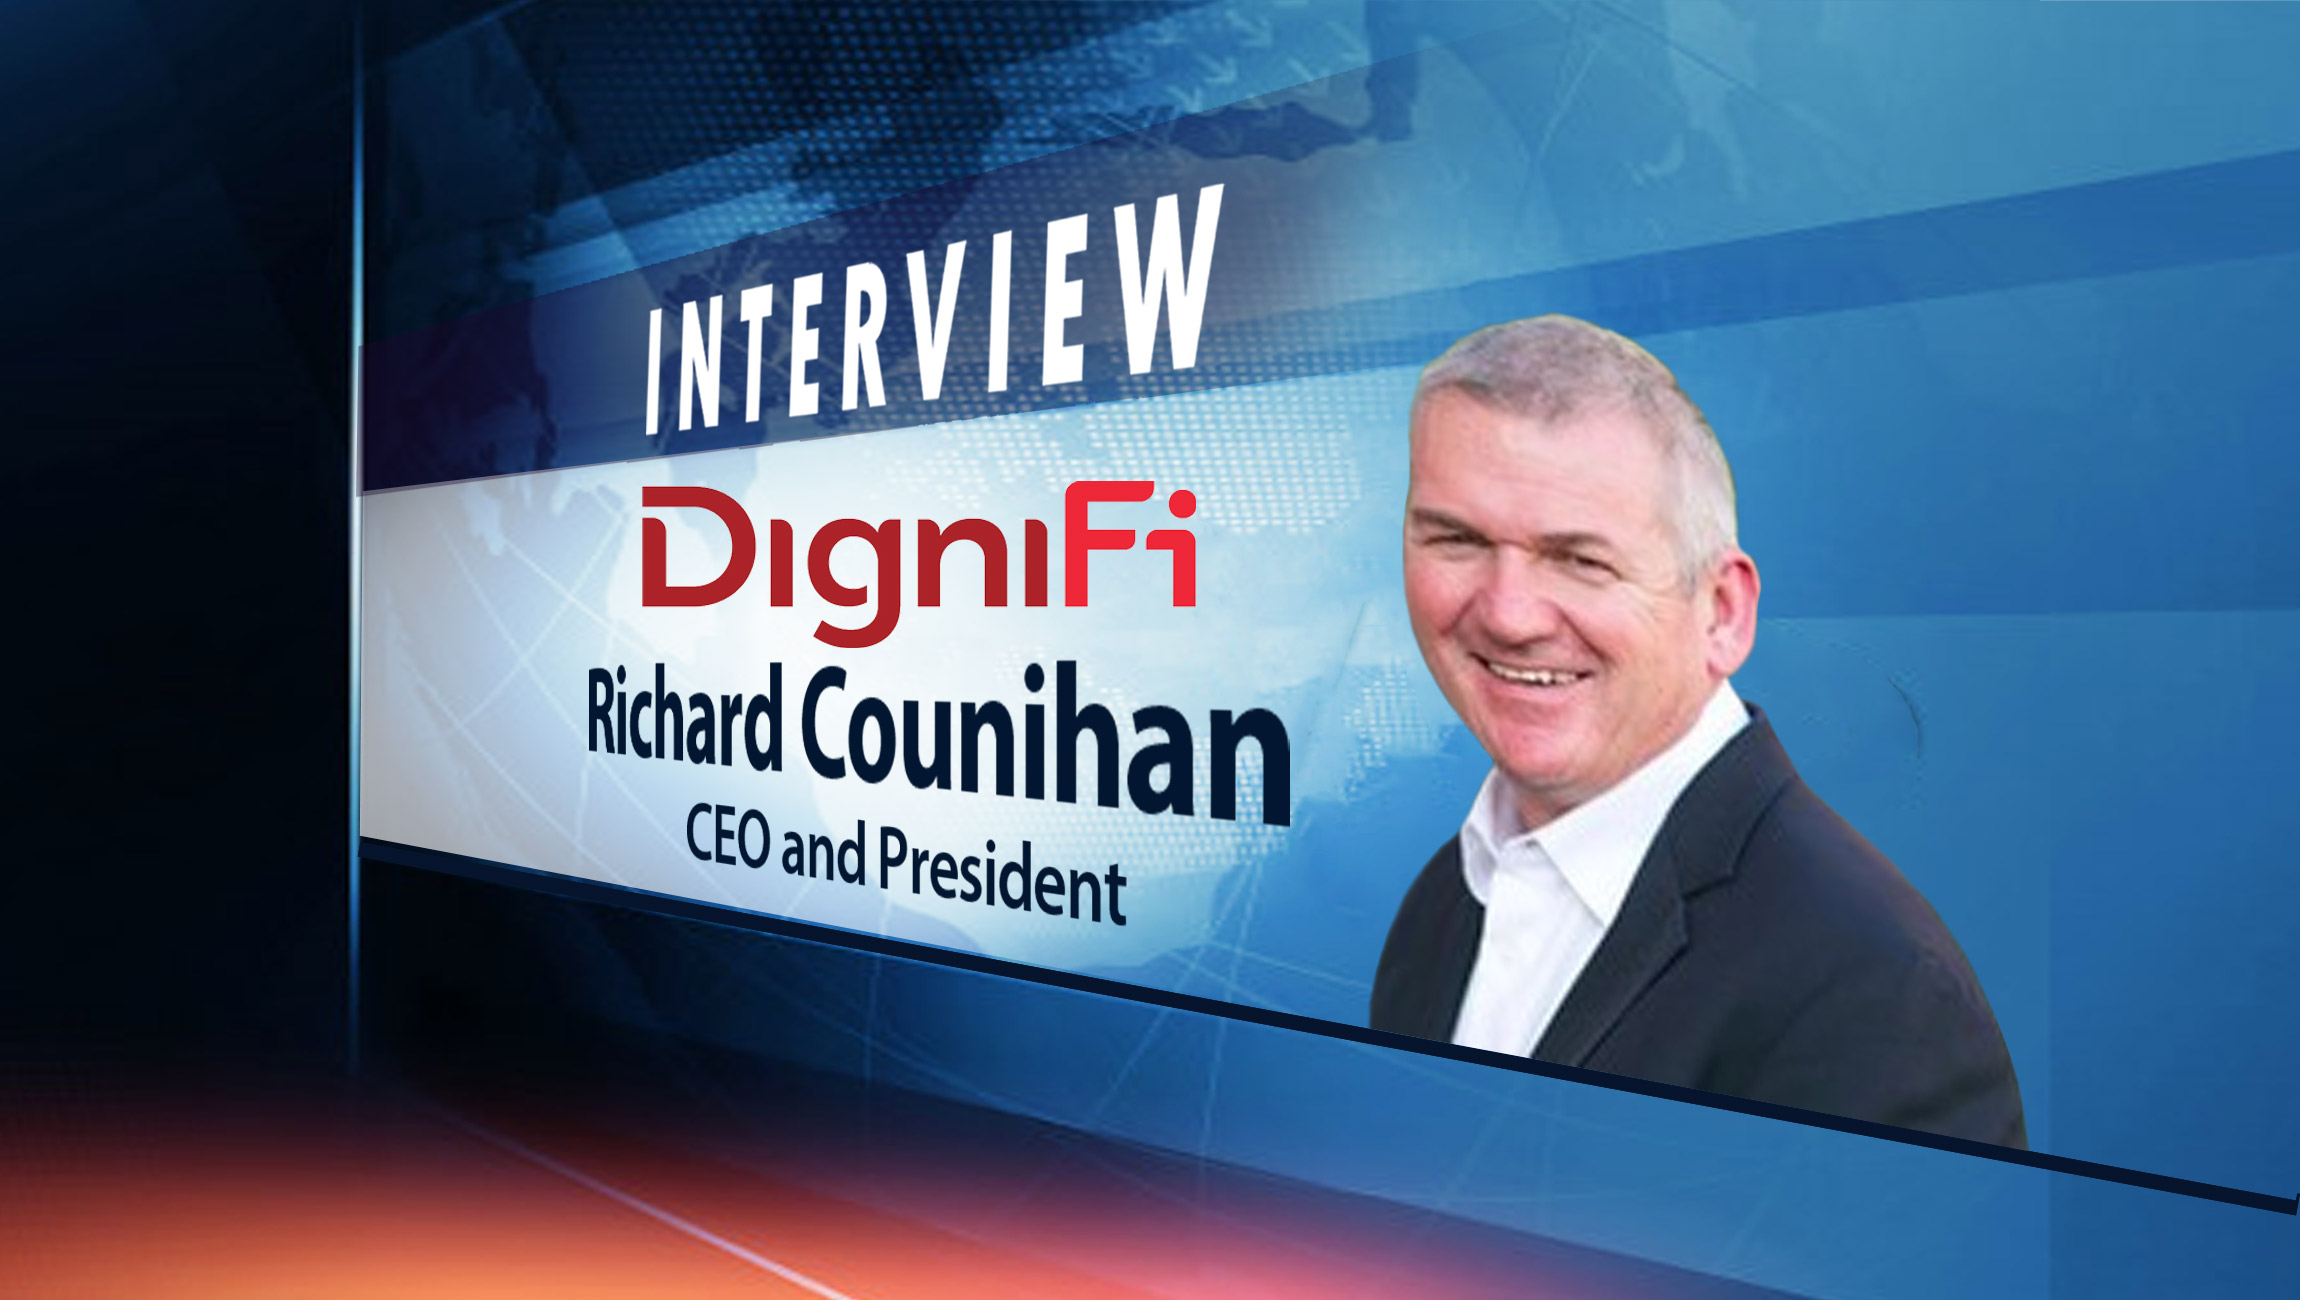 SalesTechStar Interview with Richard Counihan, CEO and President at DigniFi